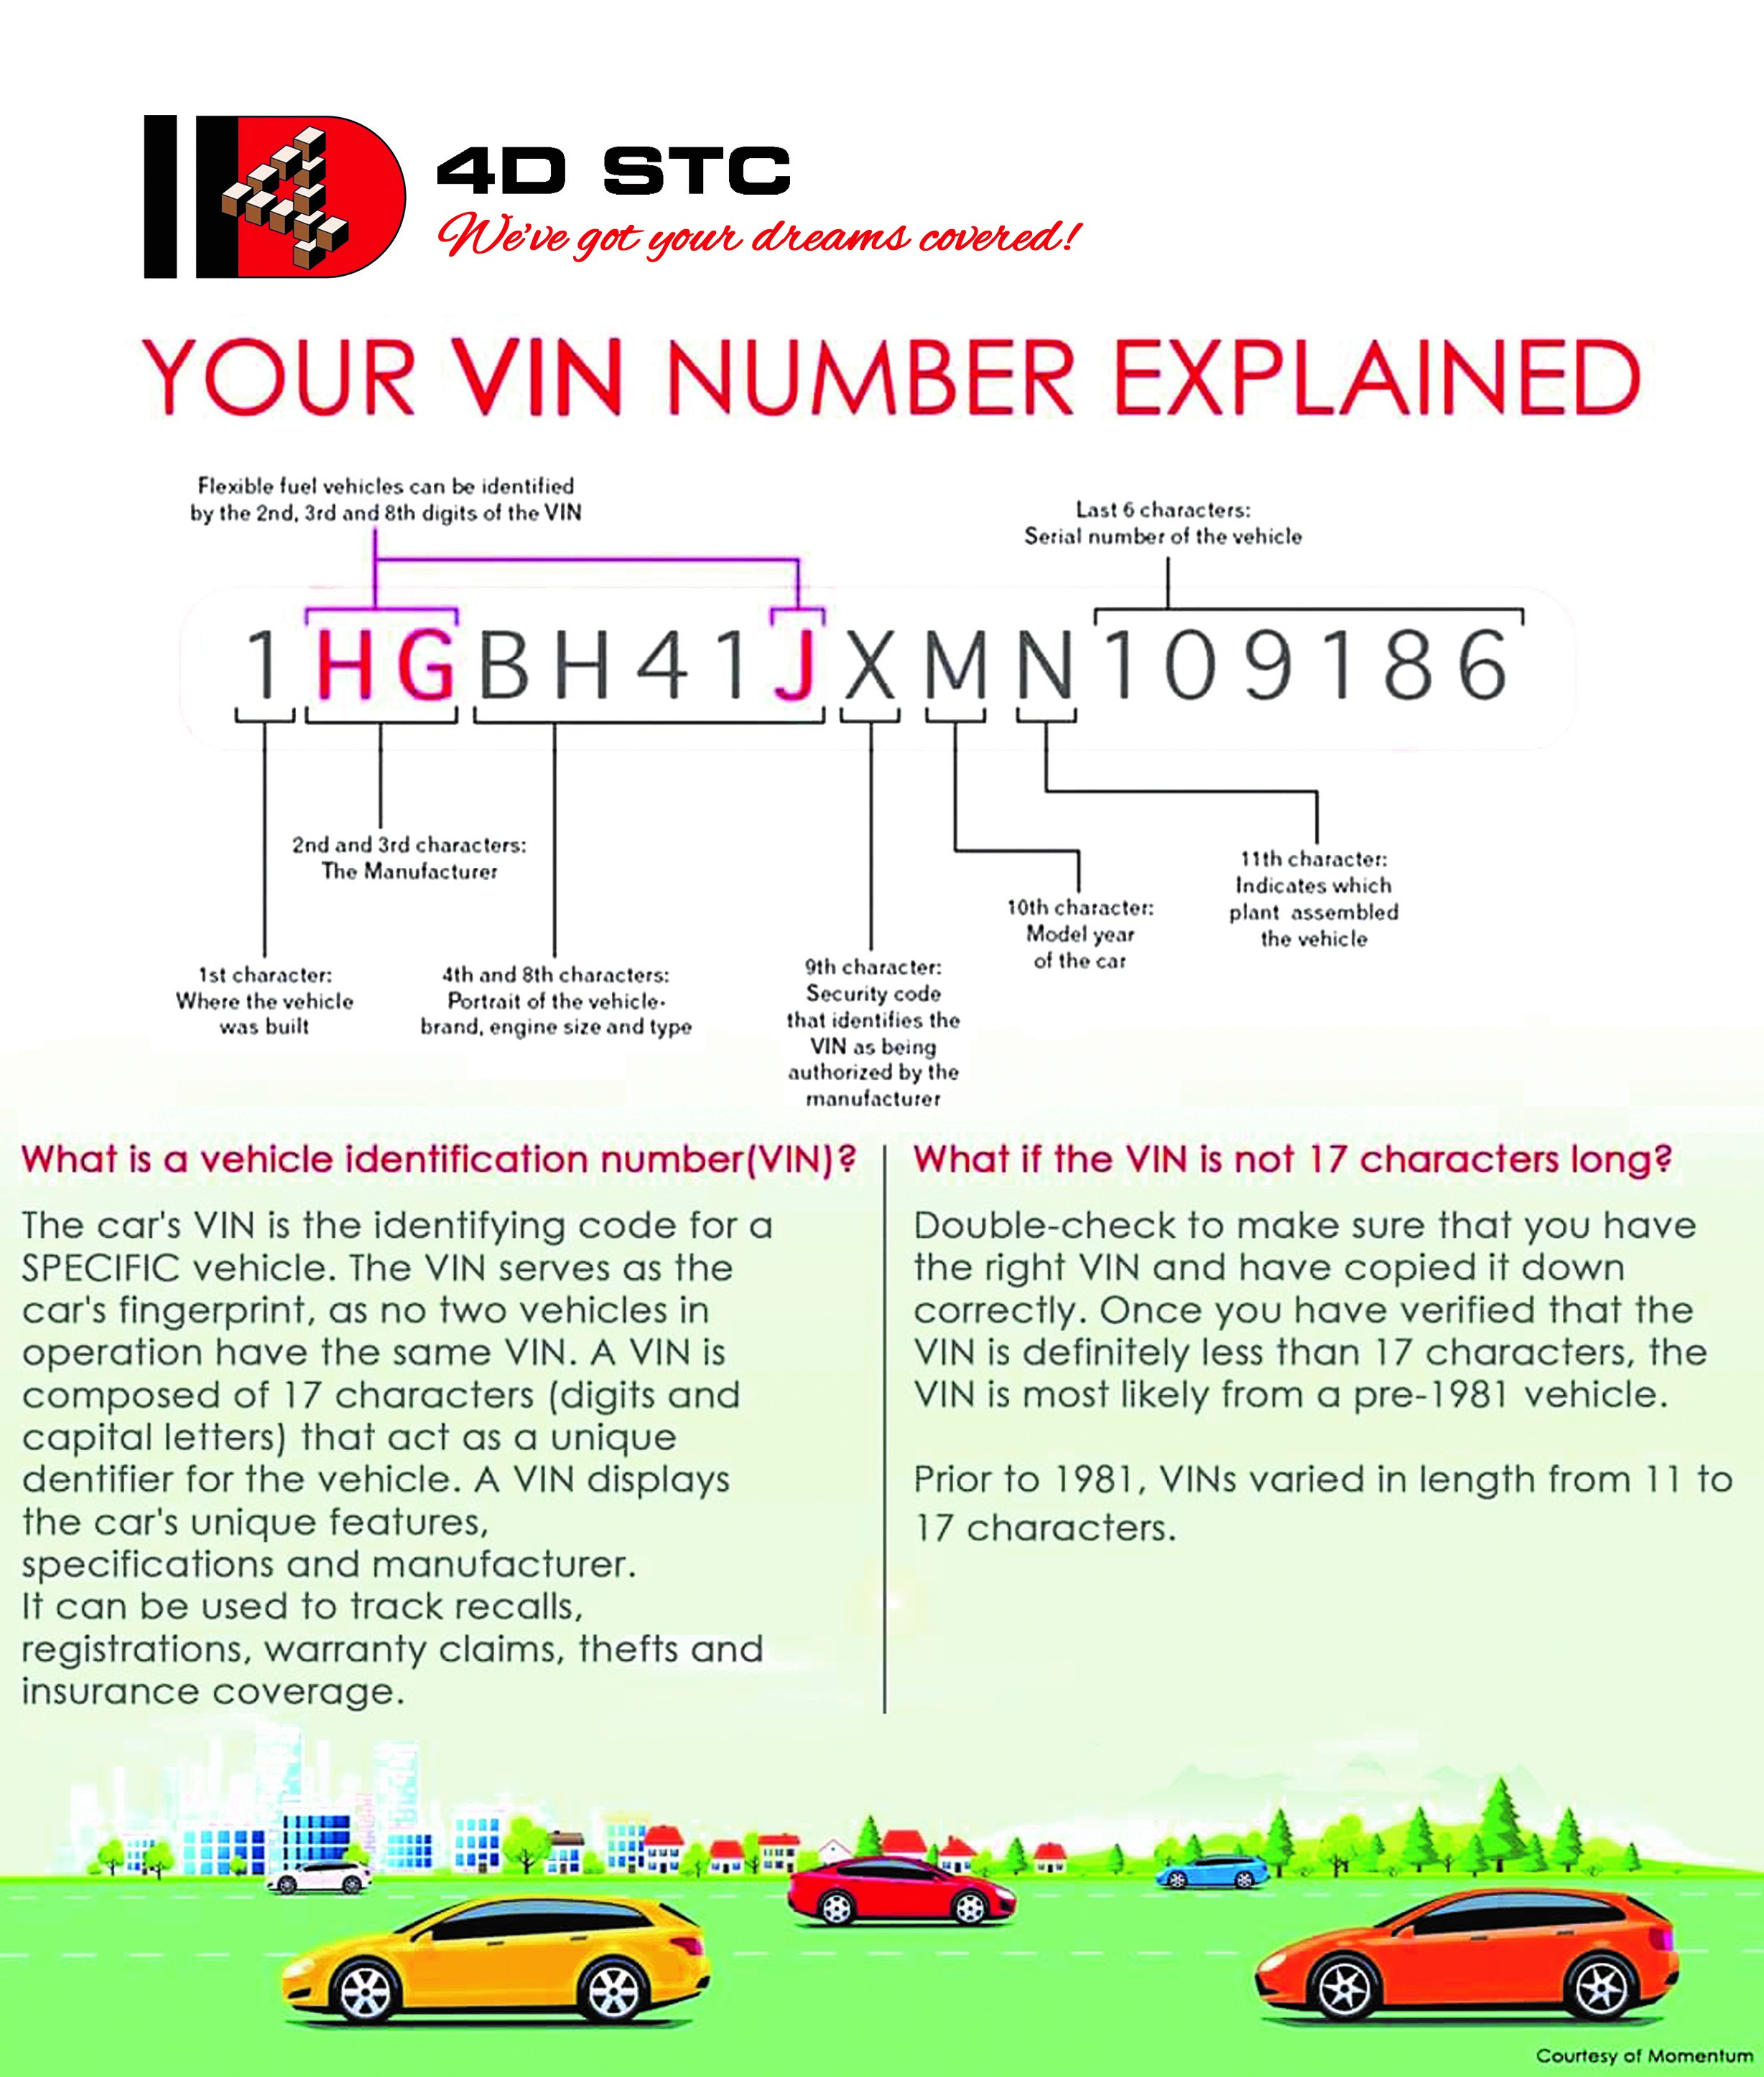 Your VIN number explained!